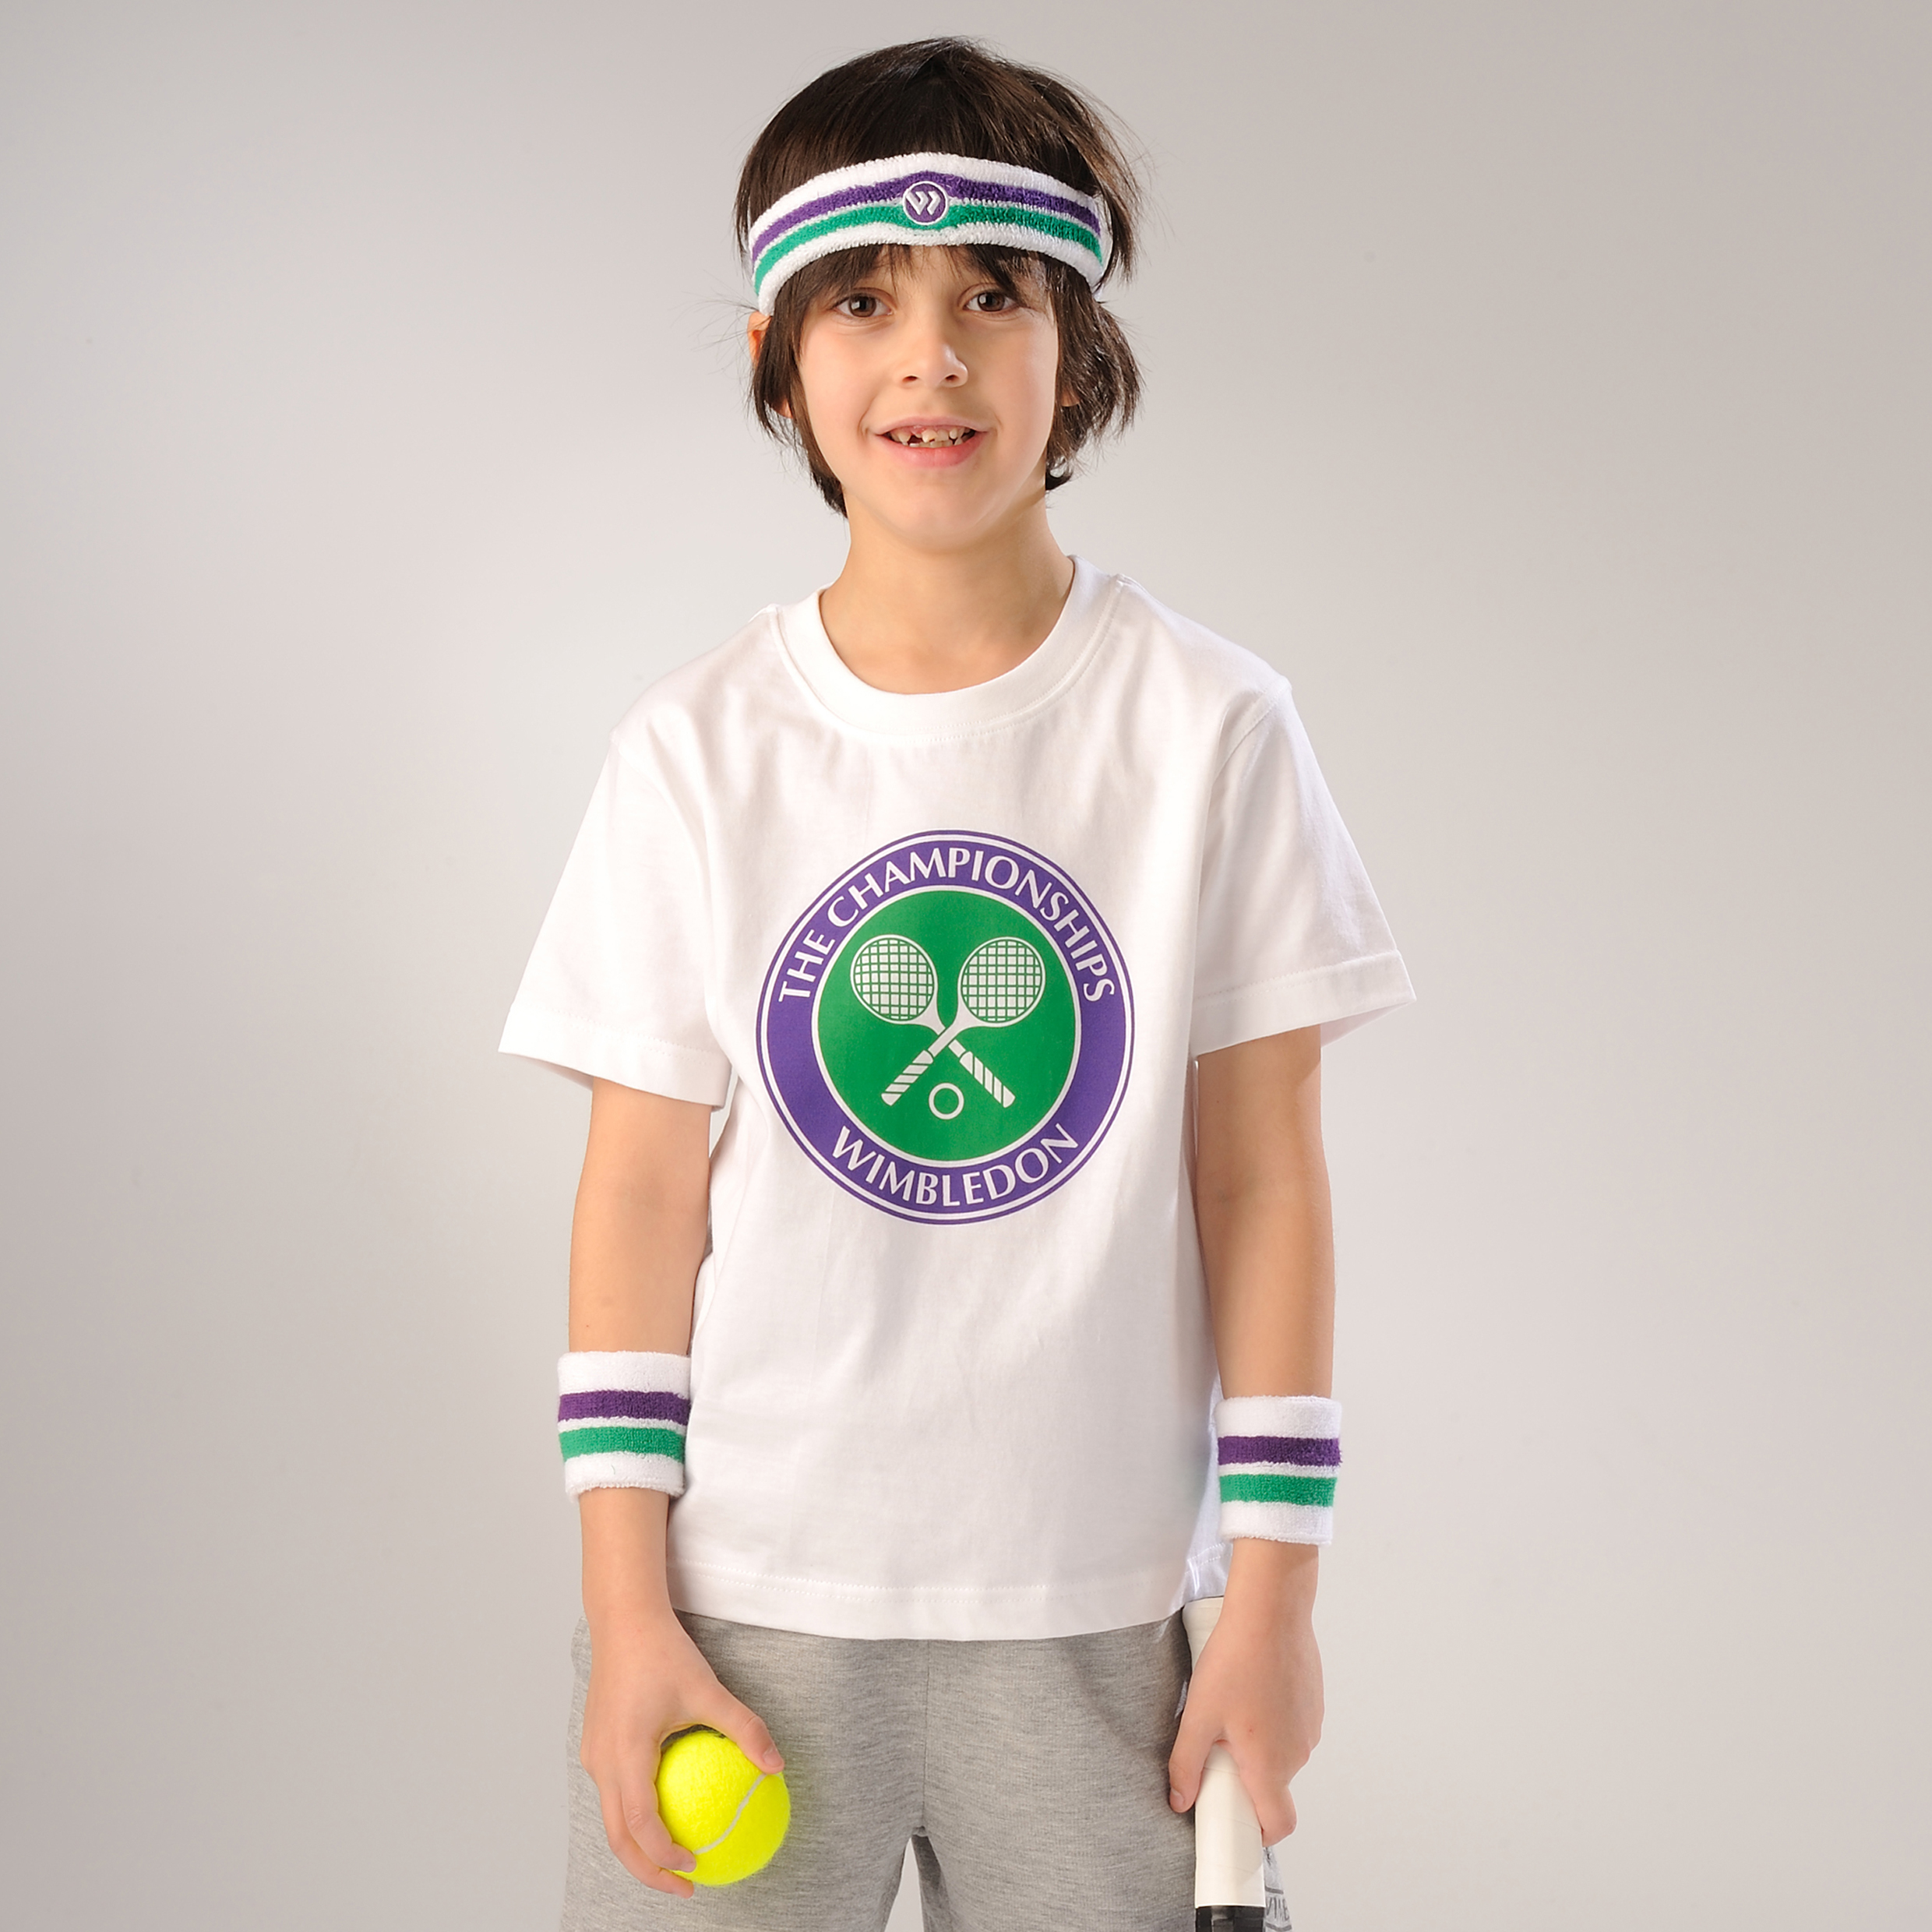 Wimbledon Crossed Rackets Print T-Shirt - White - Kids